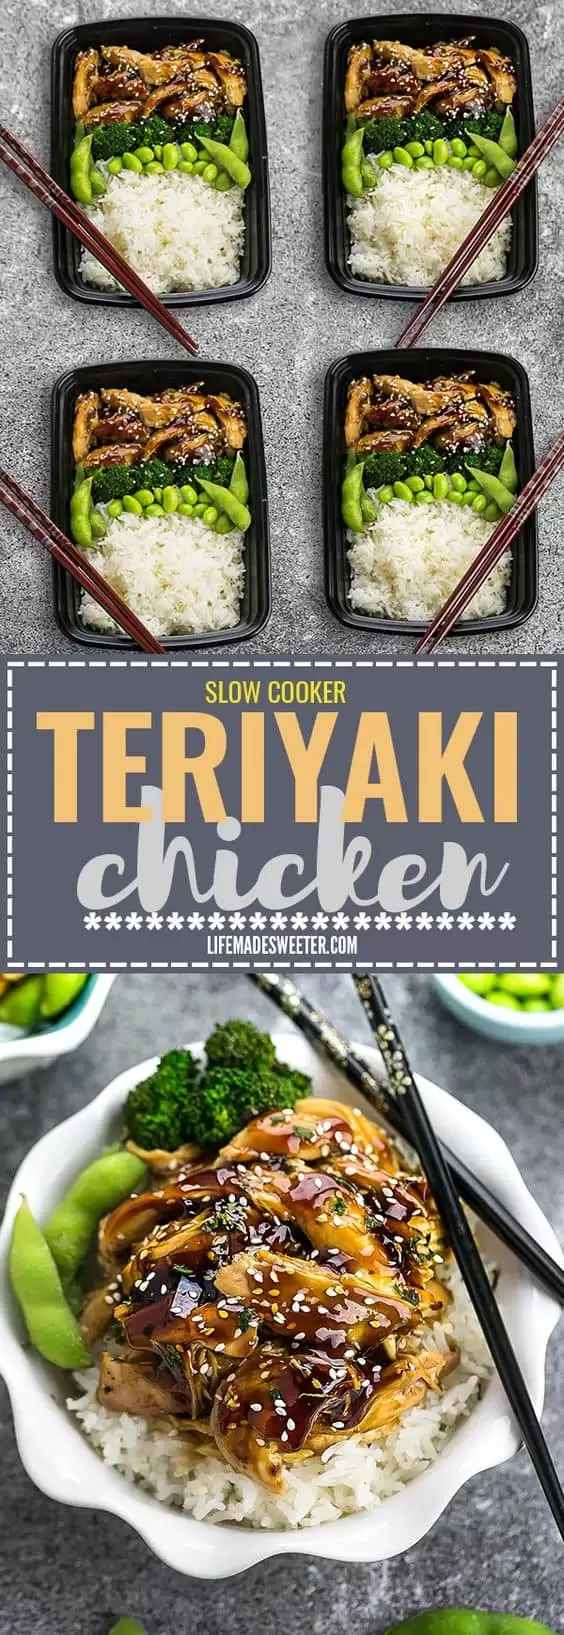 Slow Cooker Teriyaki Chicken + Instant Pot + MEAL PREP + VIDEO #crockpotmealprep